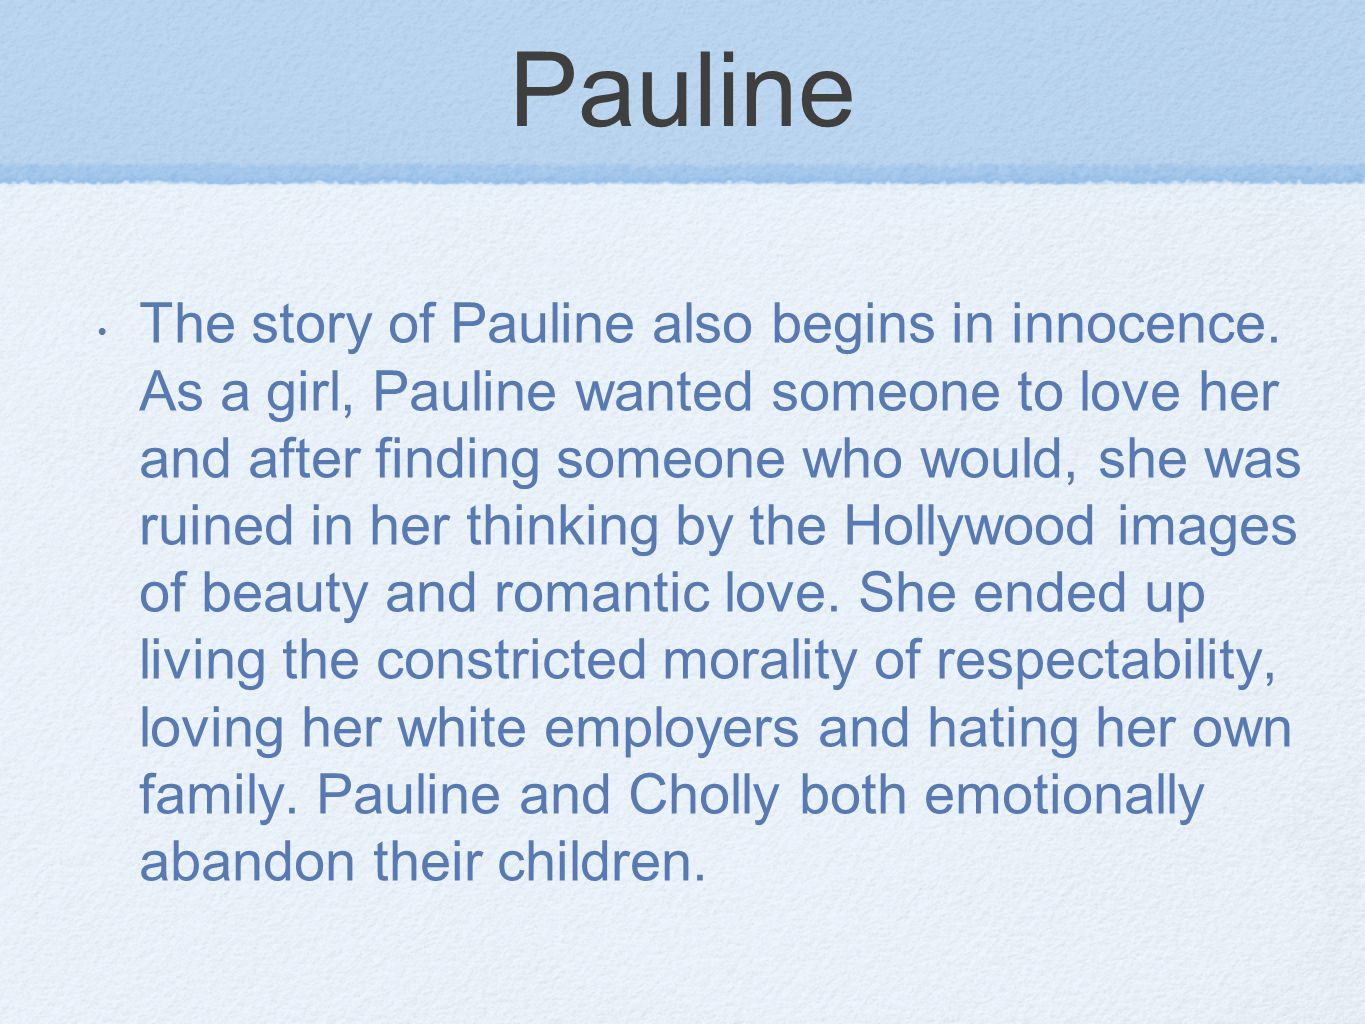 Pauline The story of Pauline also begins in innocence.